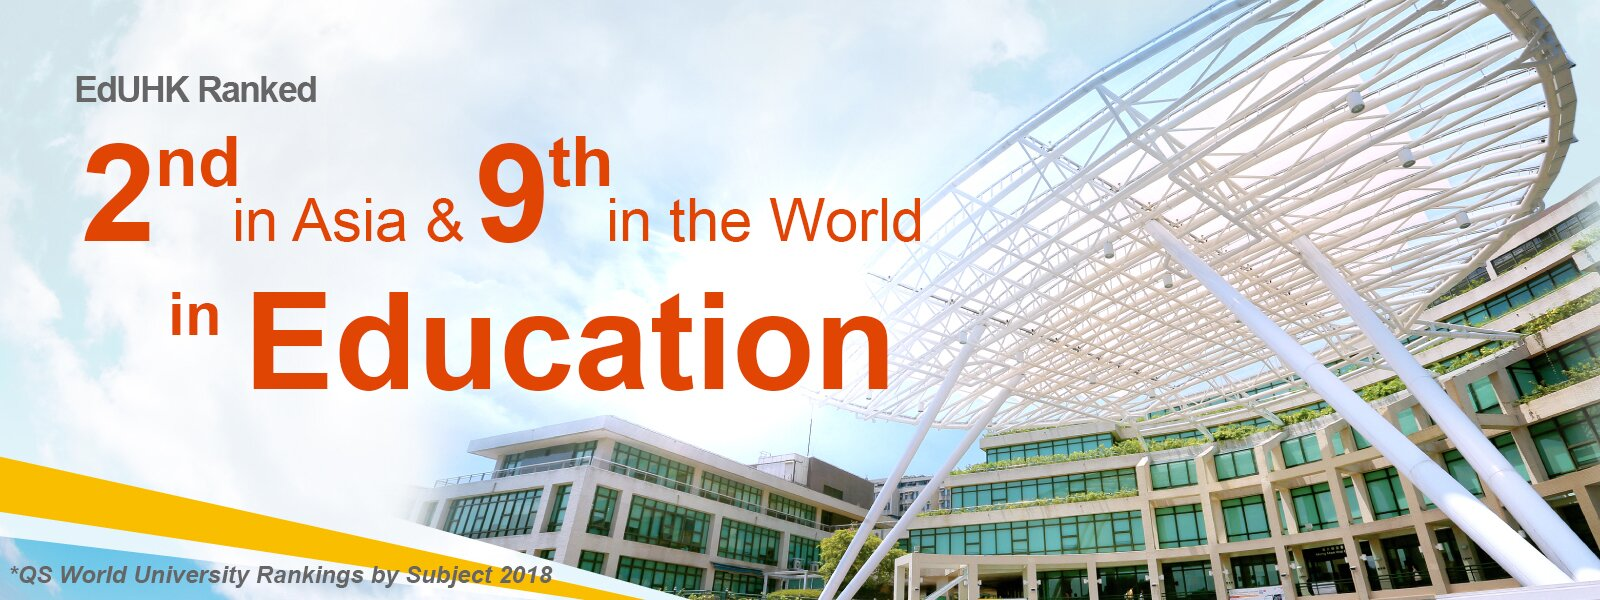 EdUHK Ranked 2nd in Asia and 9th in the World in Education